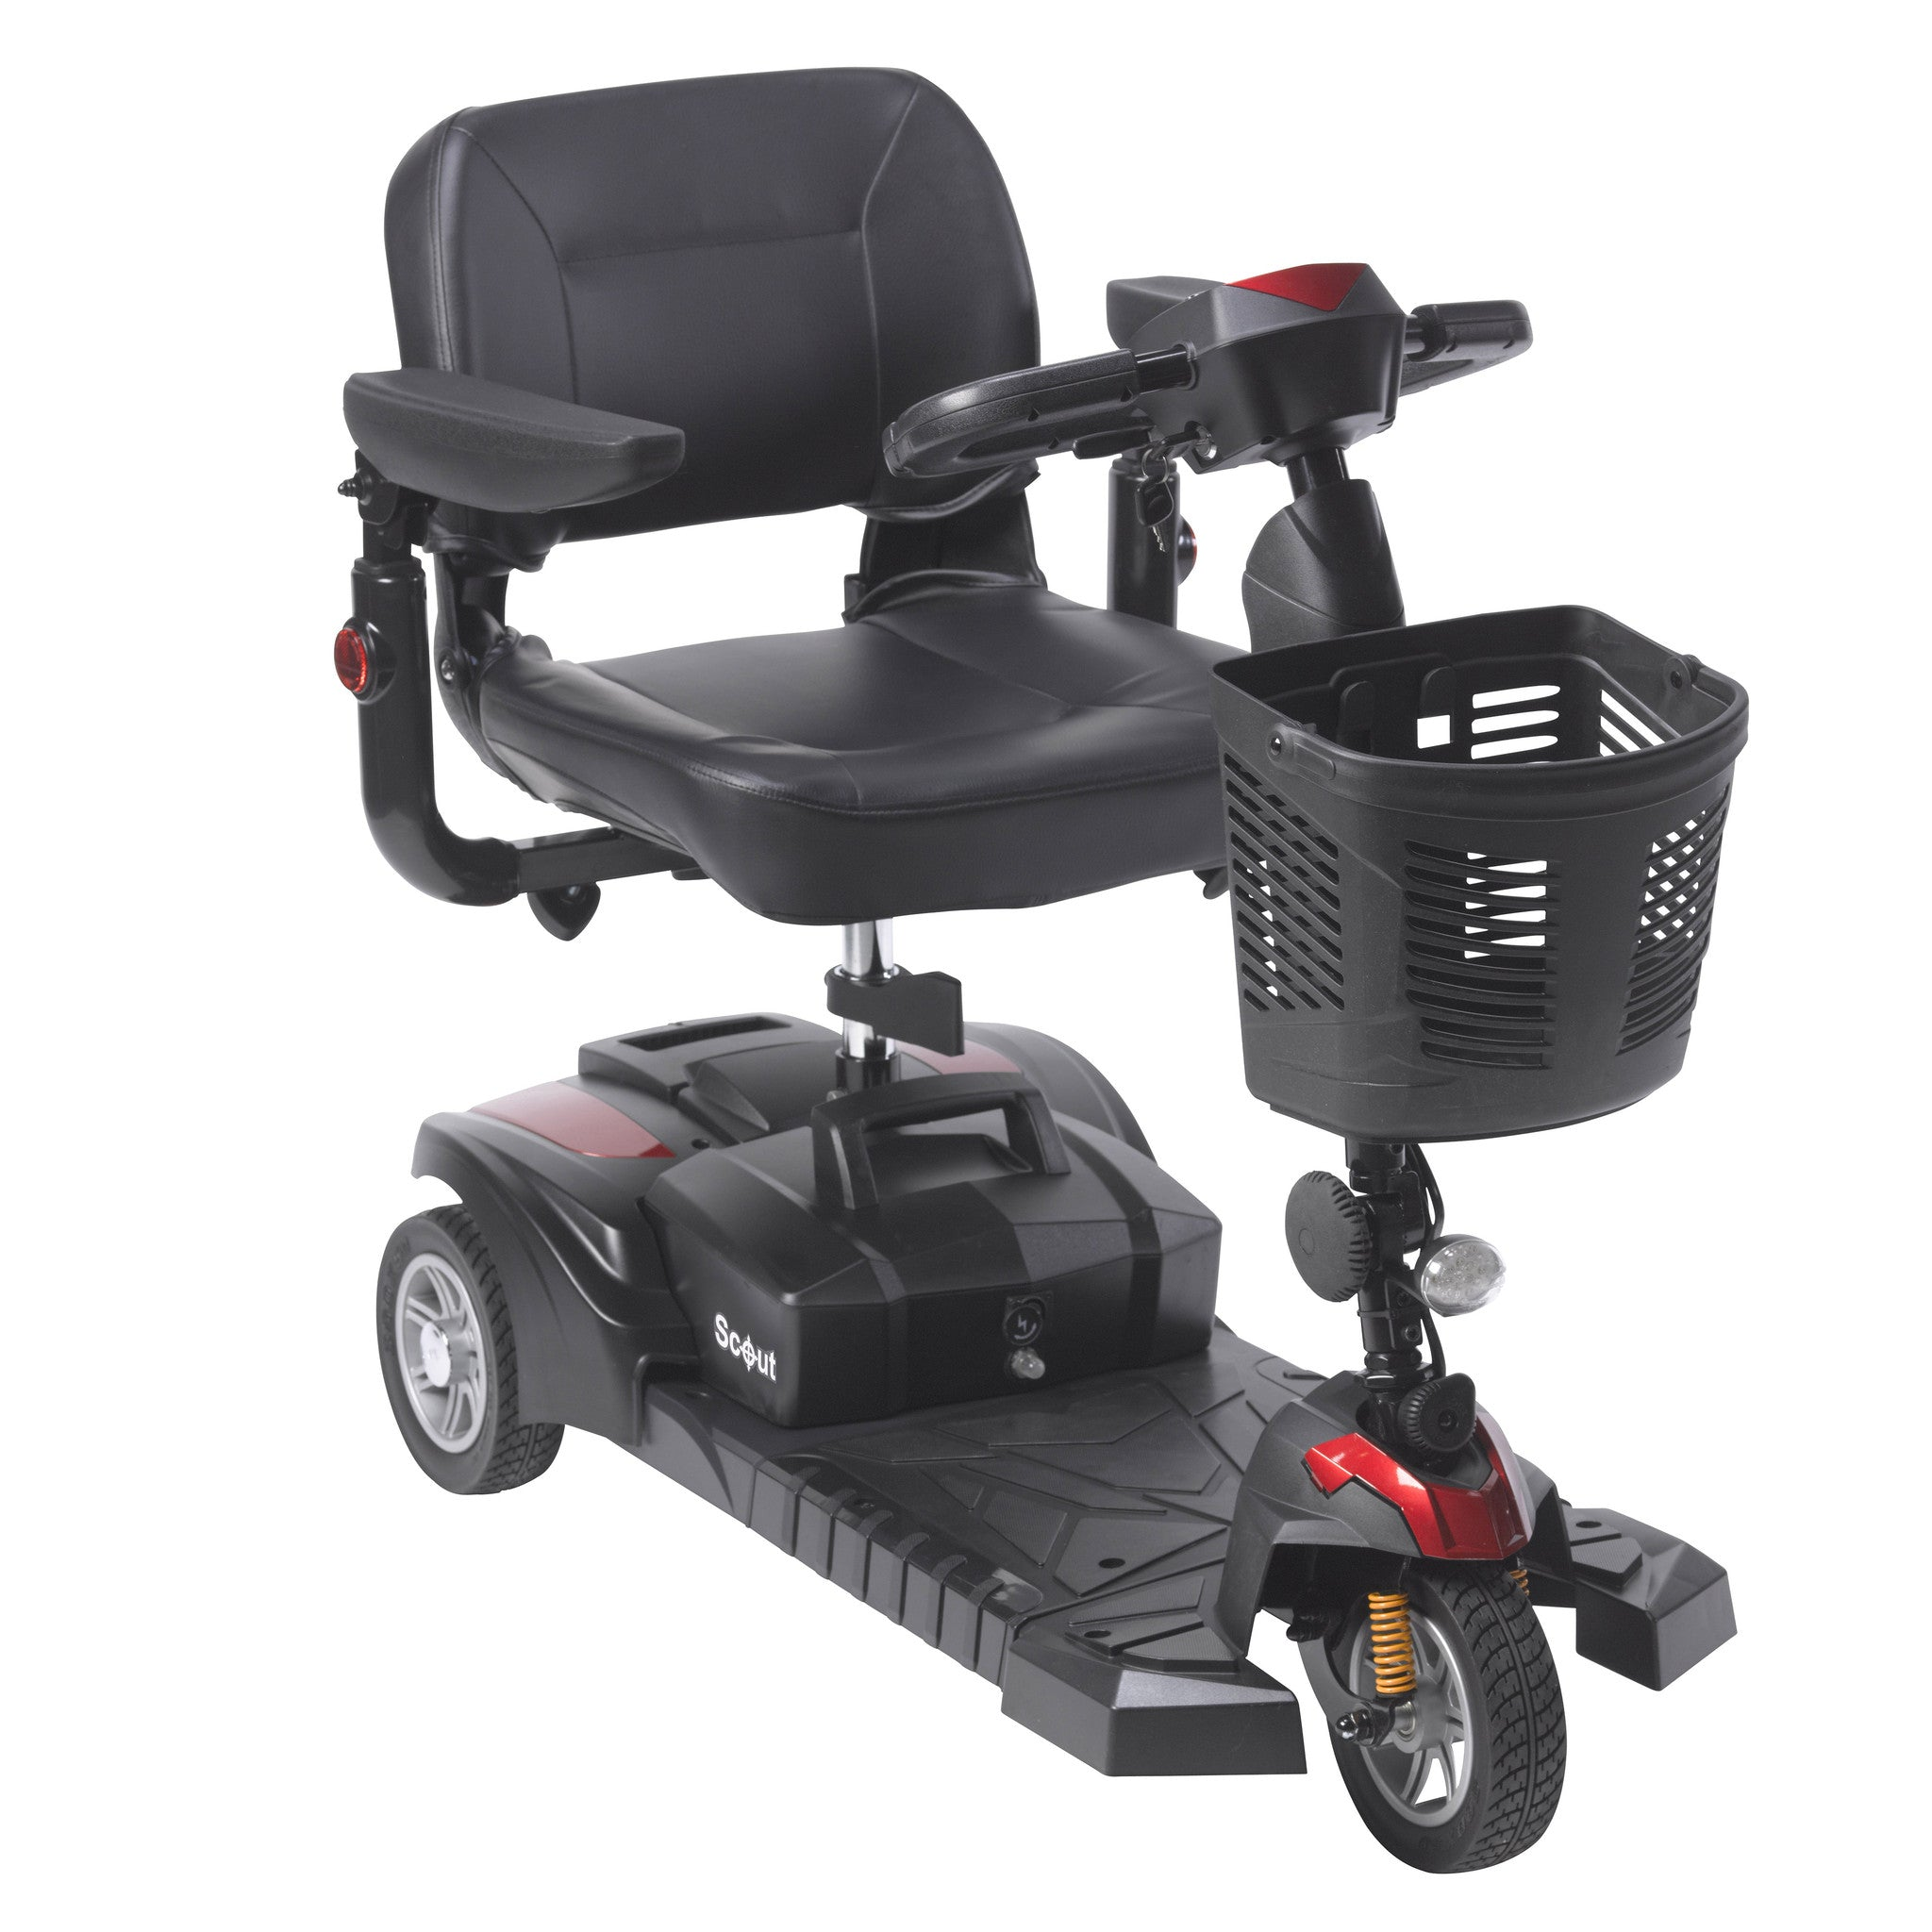 Scout pact Travel Power Scooter 3 Wheel Easy Turning Quick